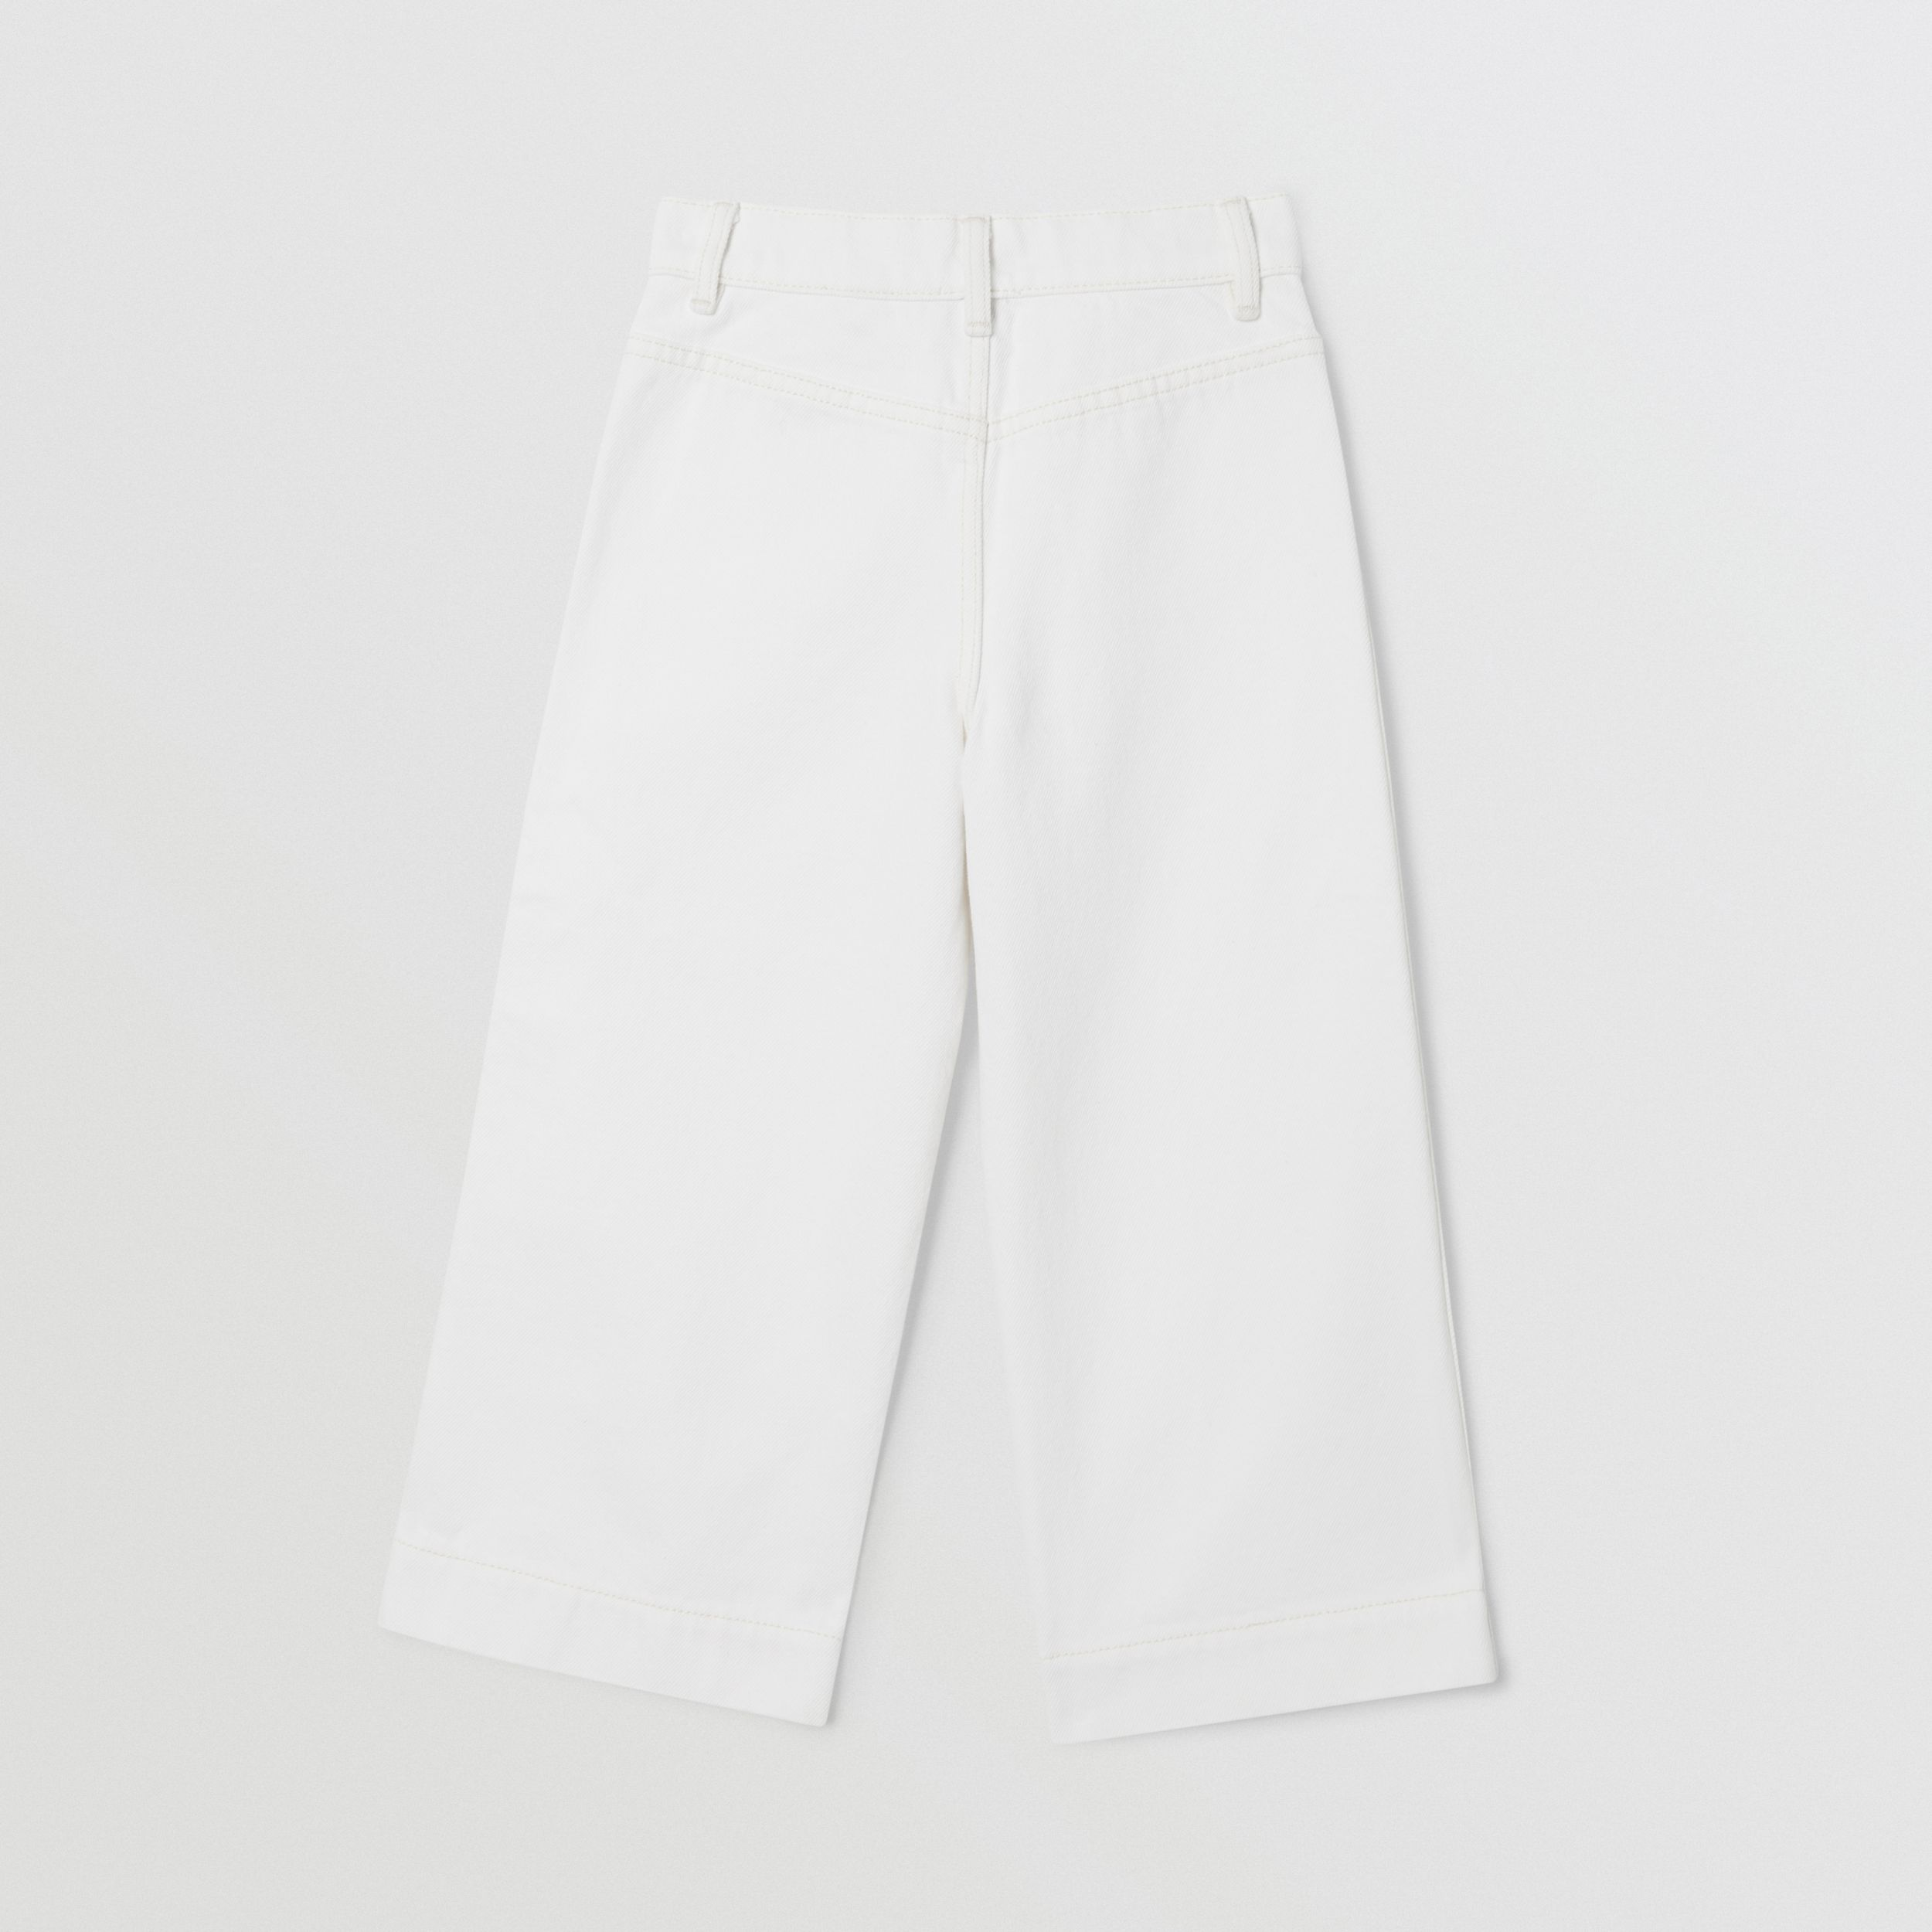 Logo Print Japanese Denim Jeans in Natural White | Burberry - 4